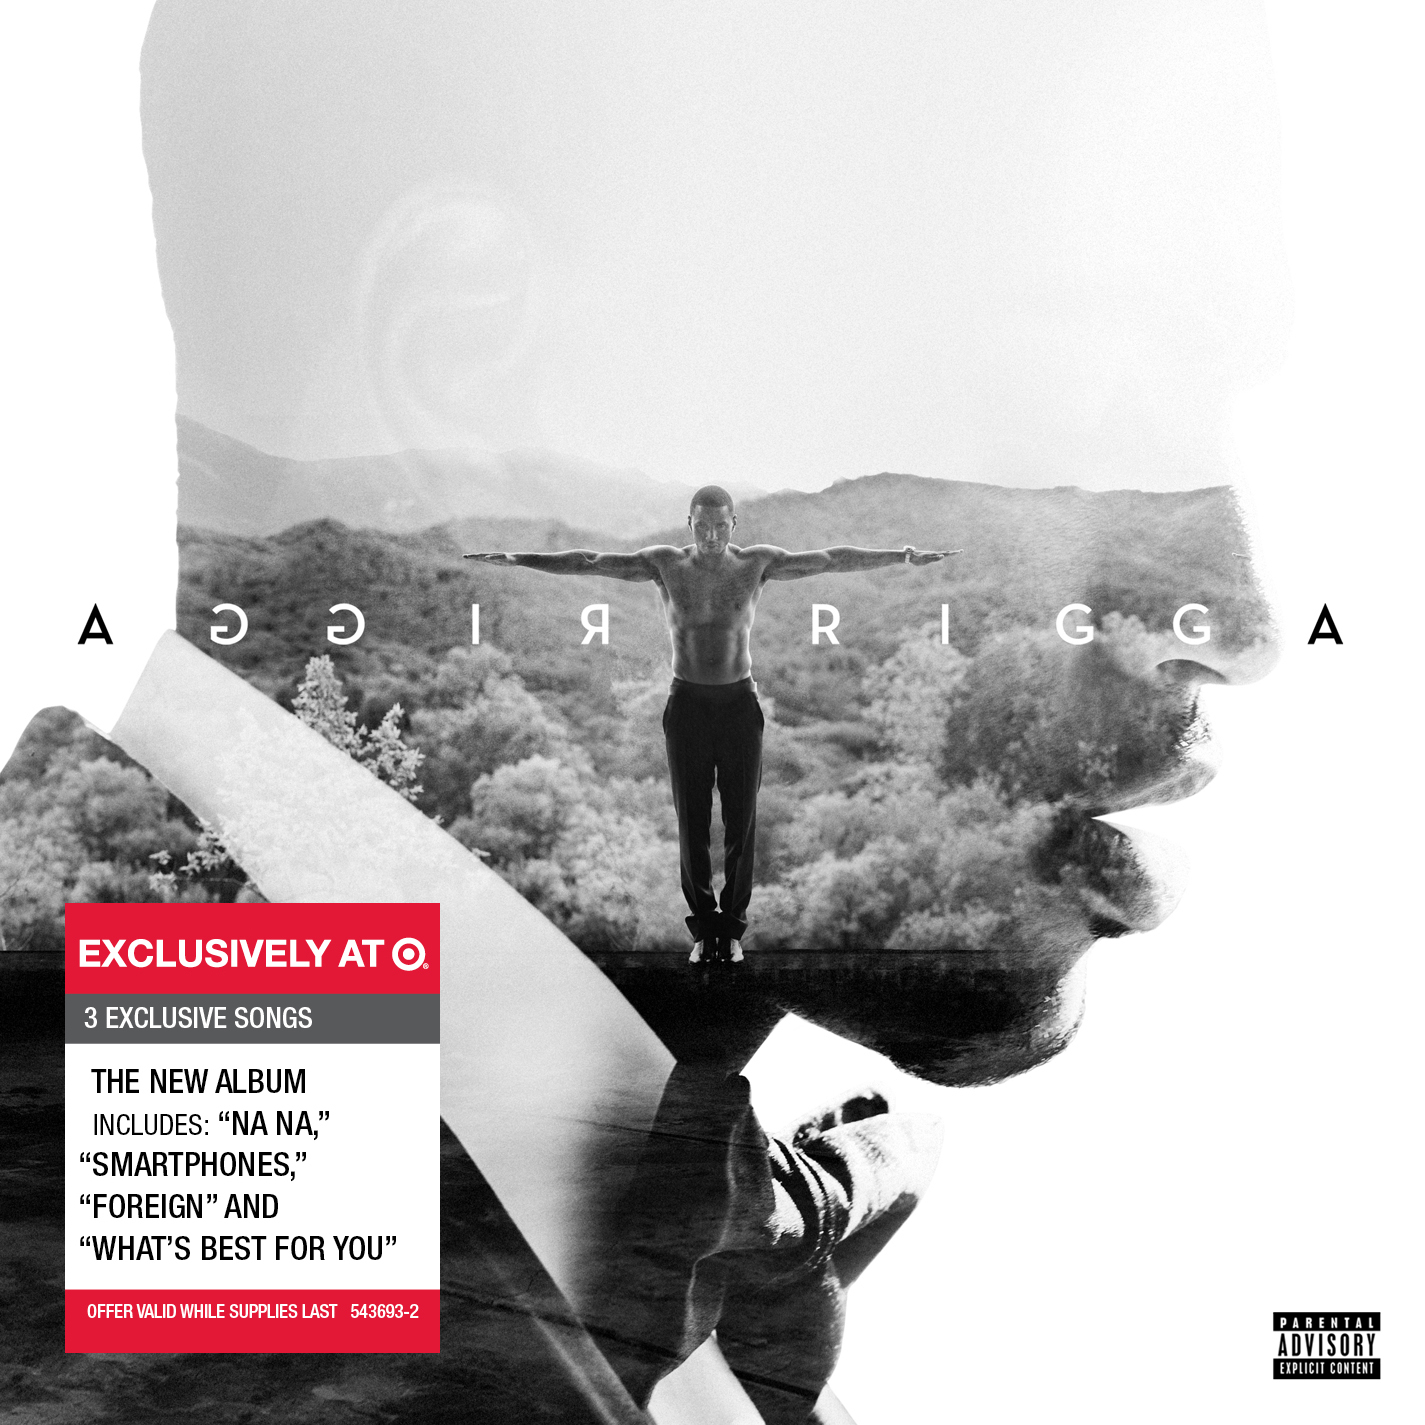 Target And Grammy Nominated Recording Artist Trey Songz Partner For Second Time